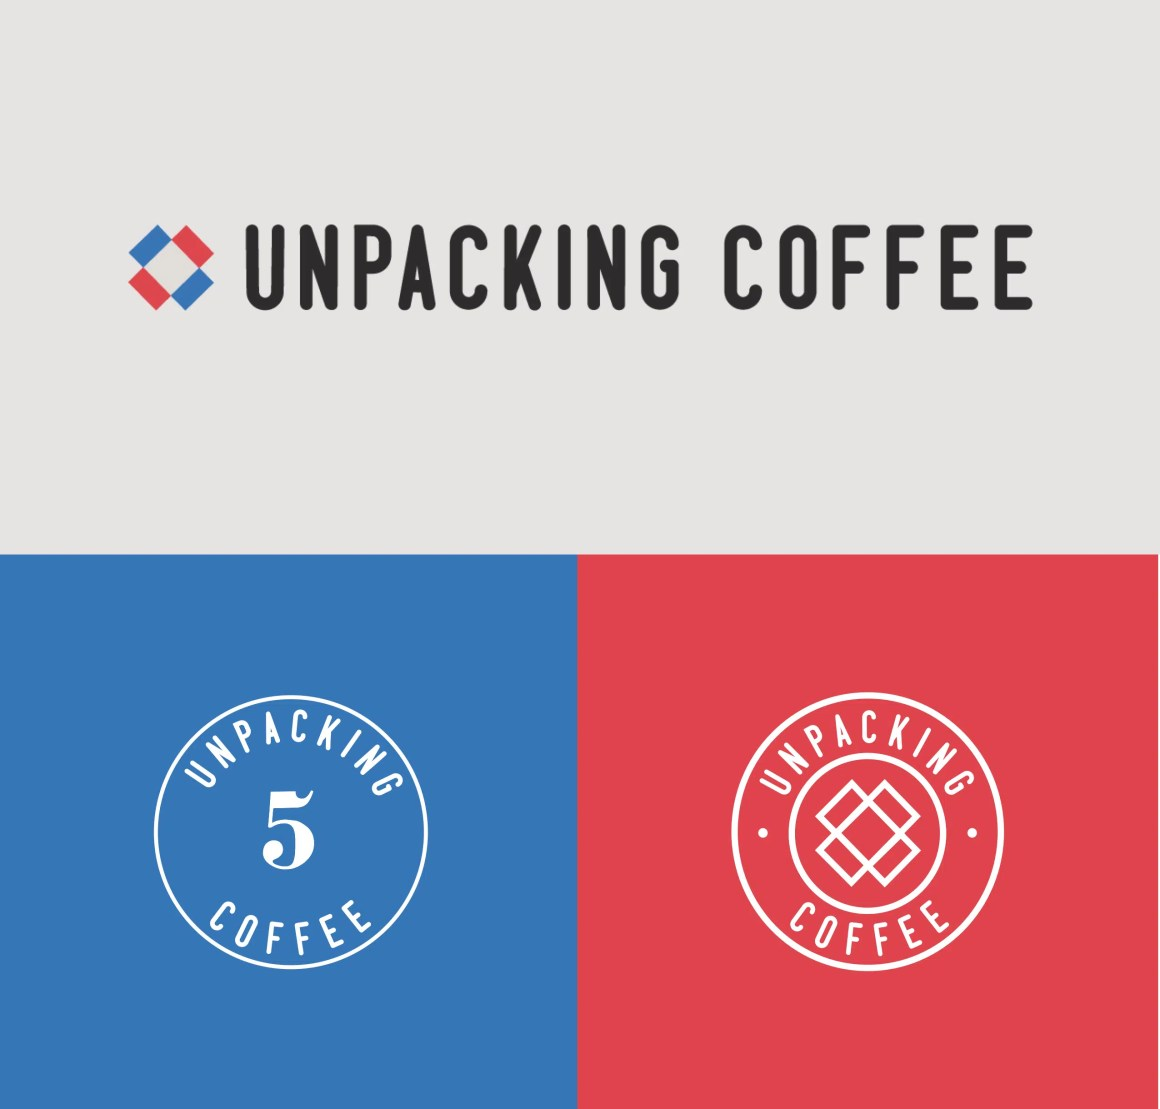 Unpacking Coffee Identity